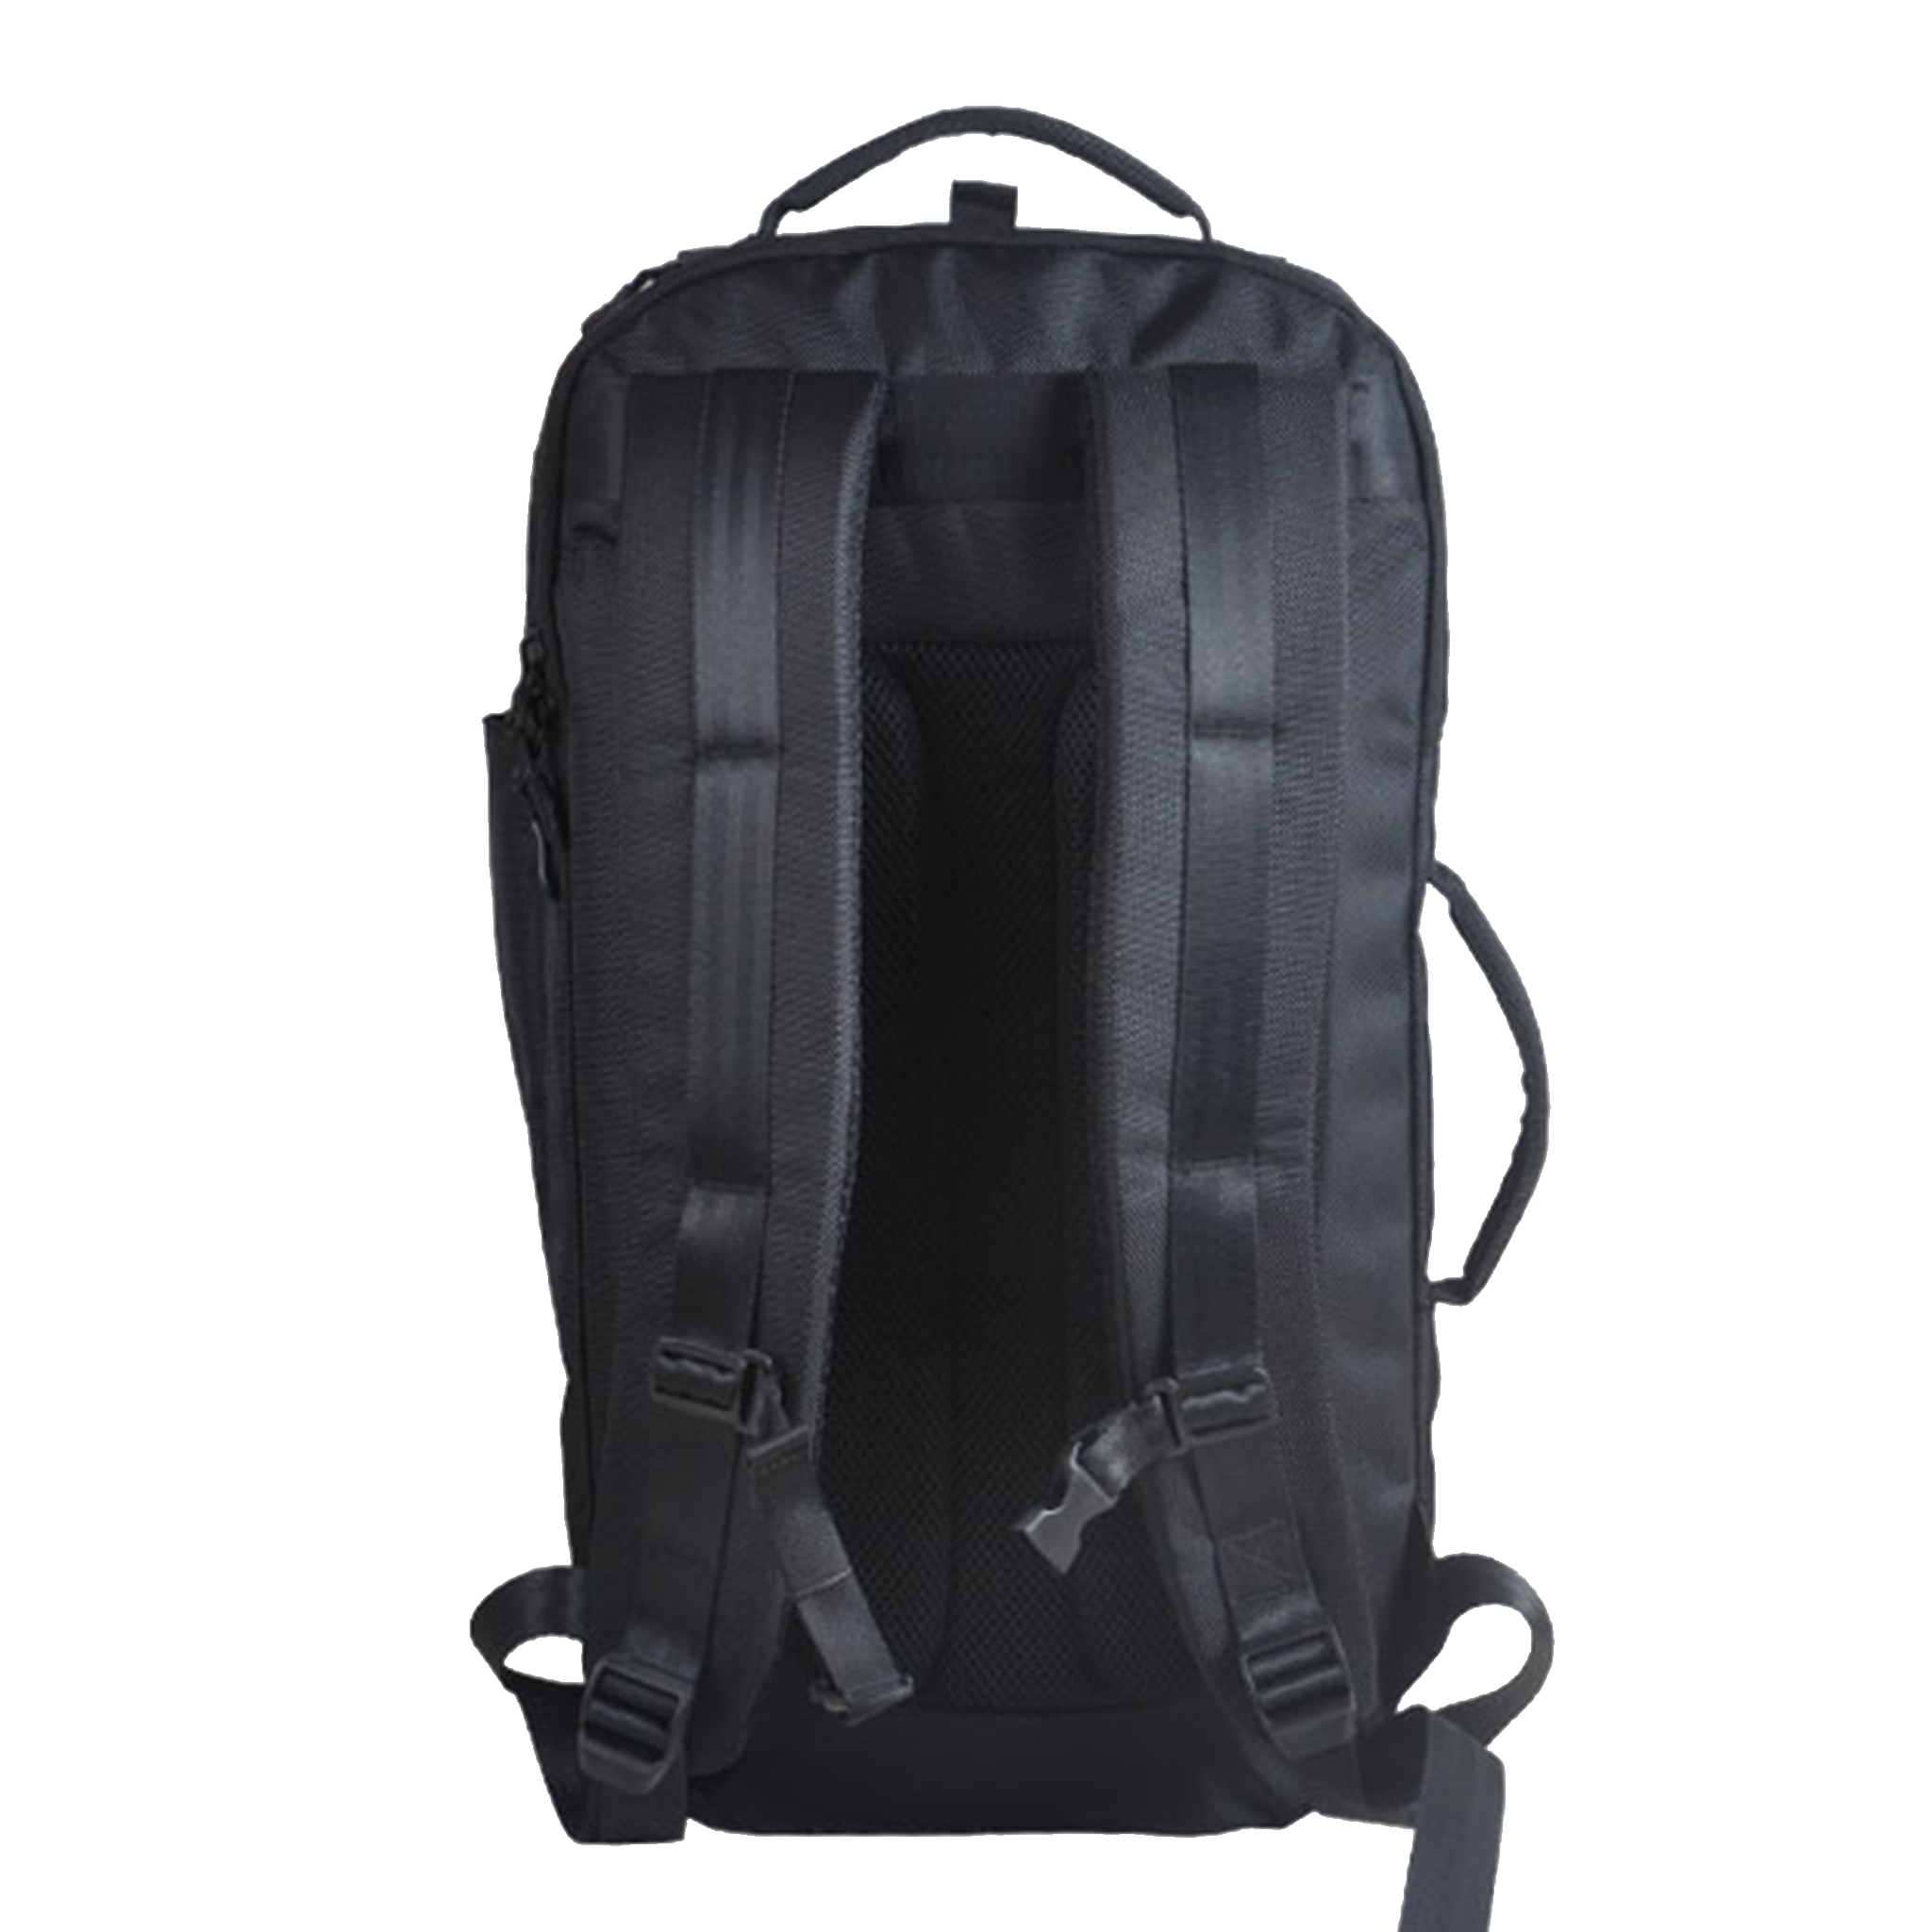 2 in 1 Backpack and Duffel Bag